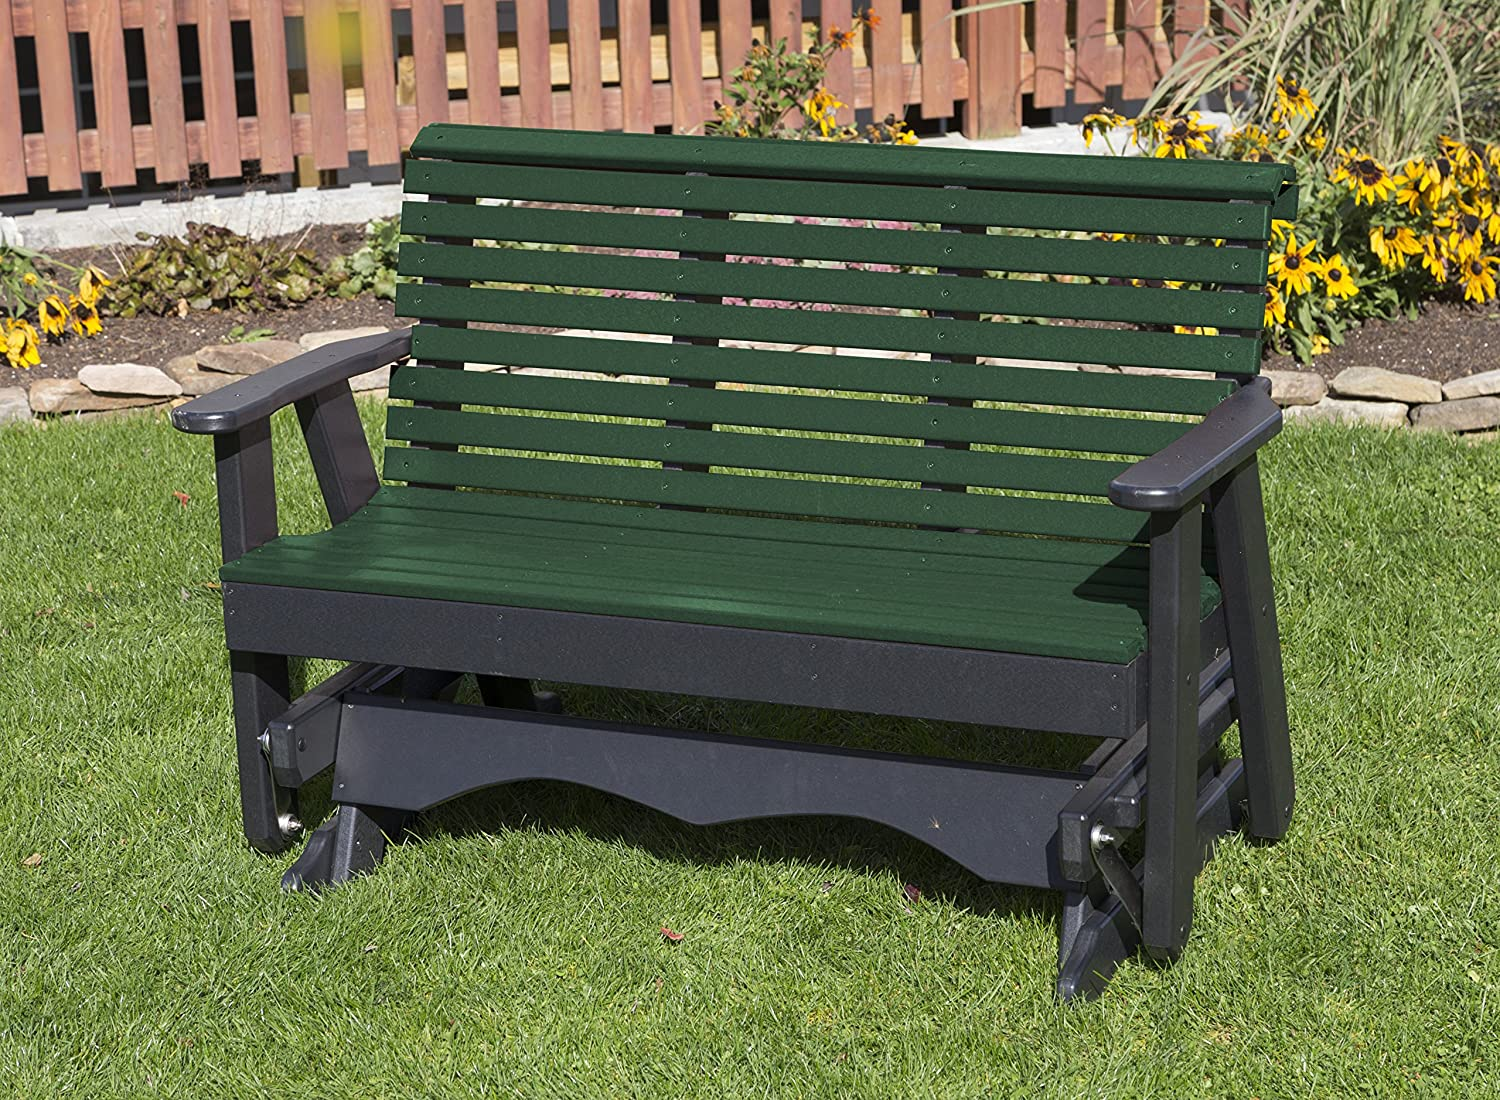 Ecommersify Inc 5FT-Turf Green-Poly Lumber Back Porch sale ROLL Branded goods Glide